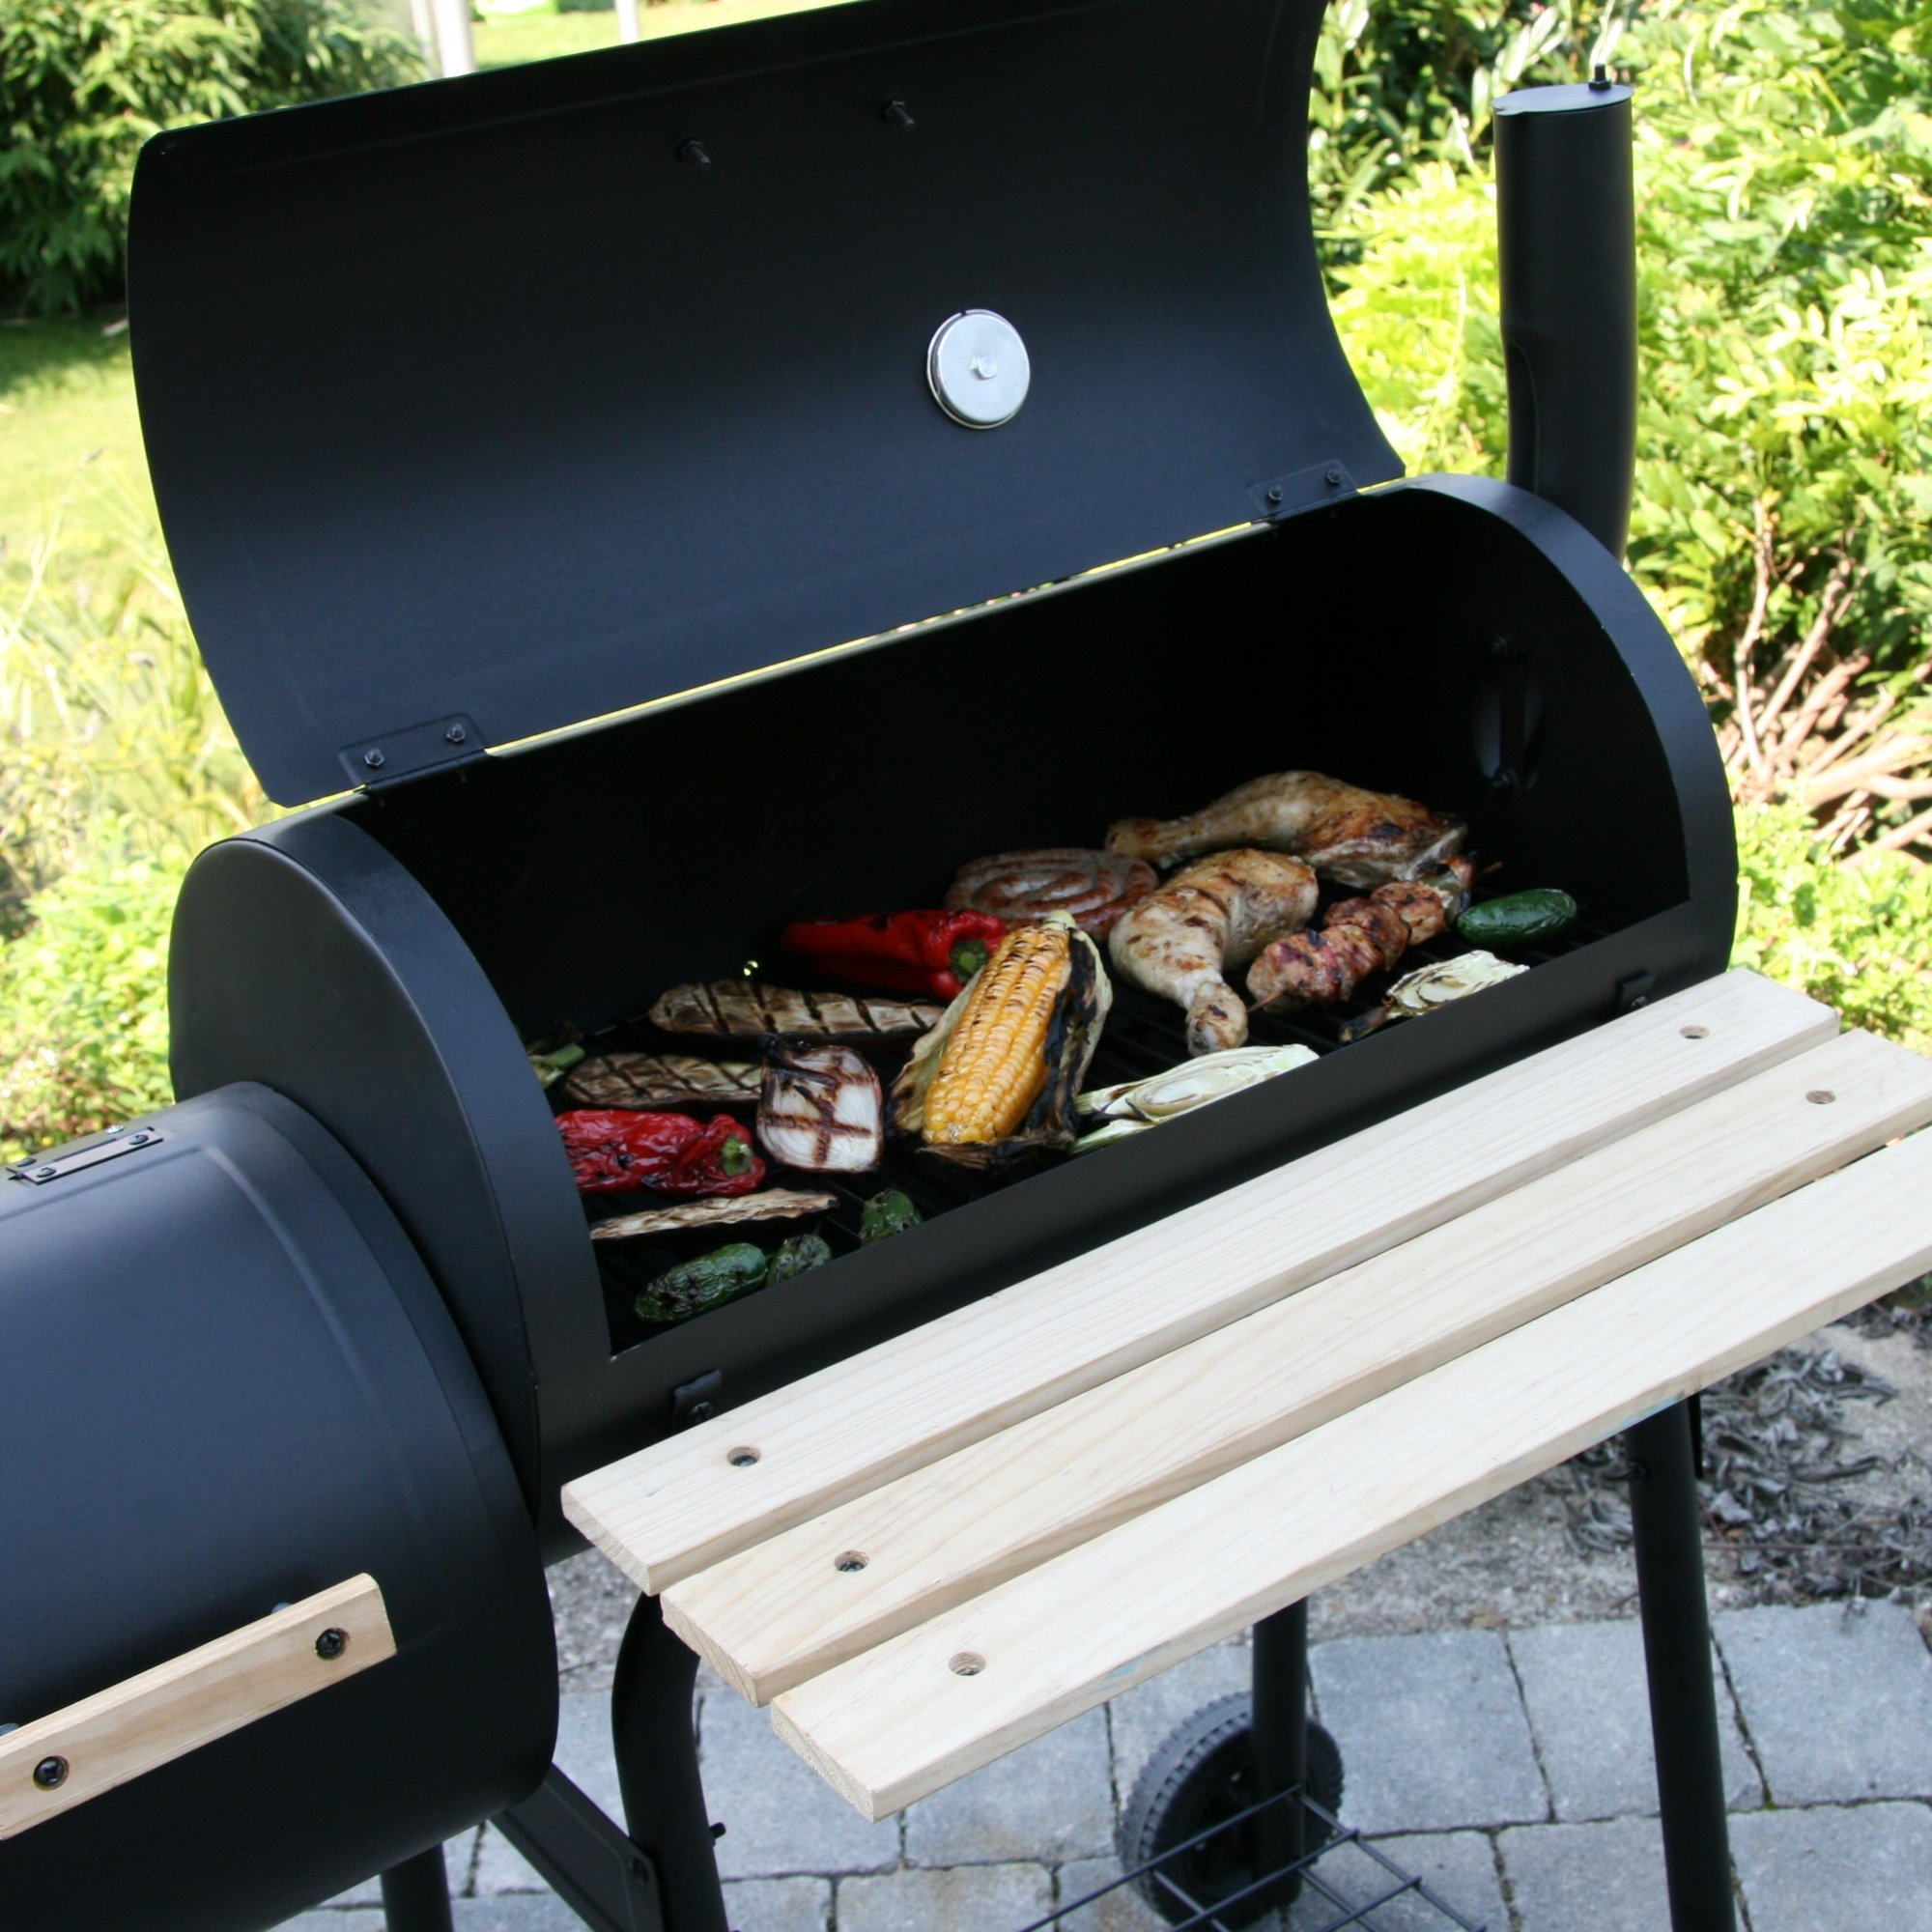 bbq toro smoker holzkohle grillwagen magnolia mit feuerbox bbq holzkohlegrill ebay. Black Bedroom Furniture Sets. Home Design Ideas